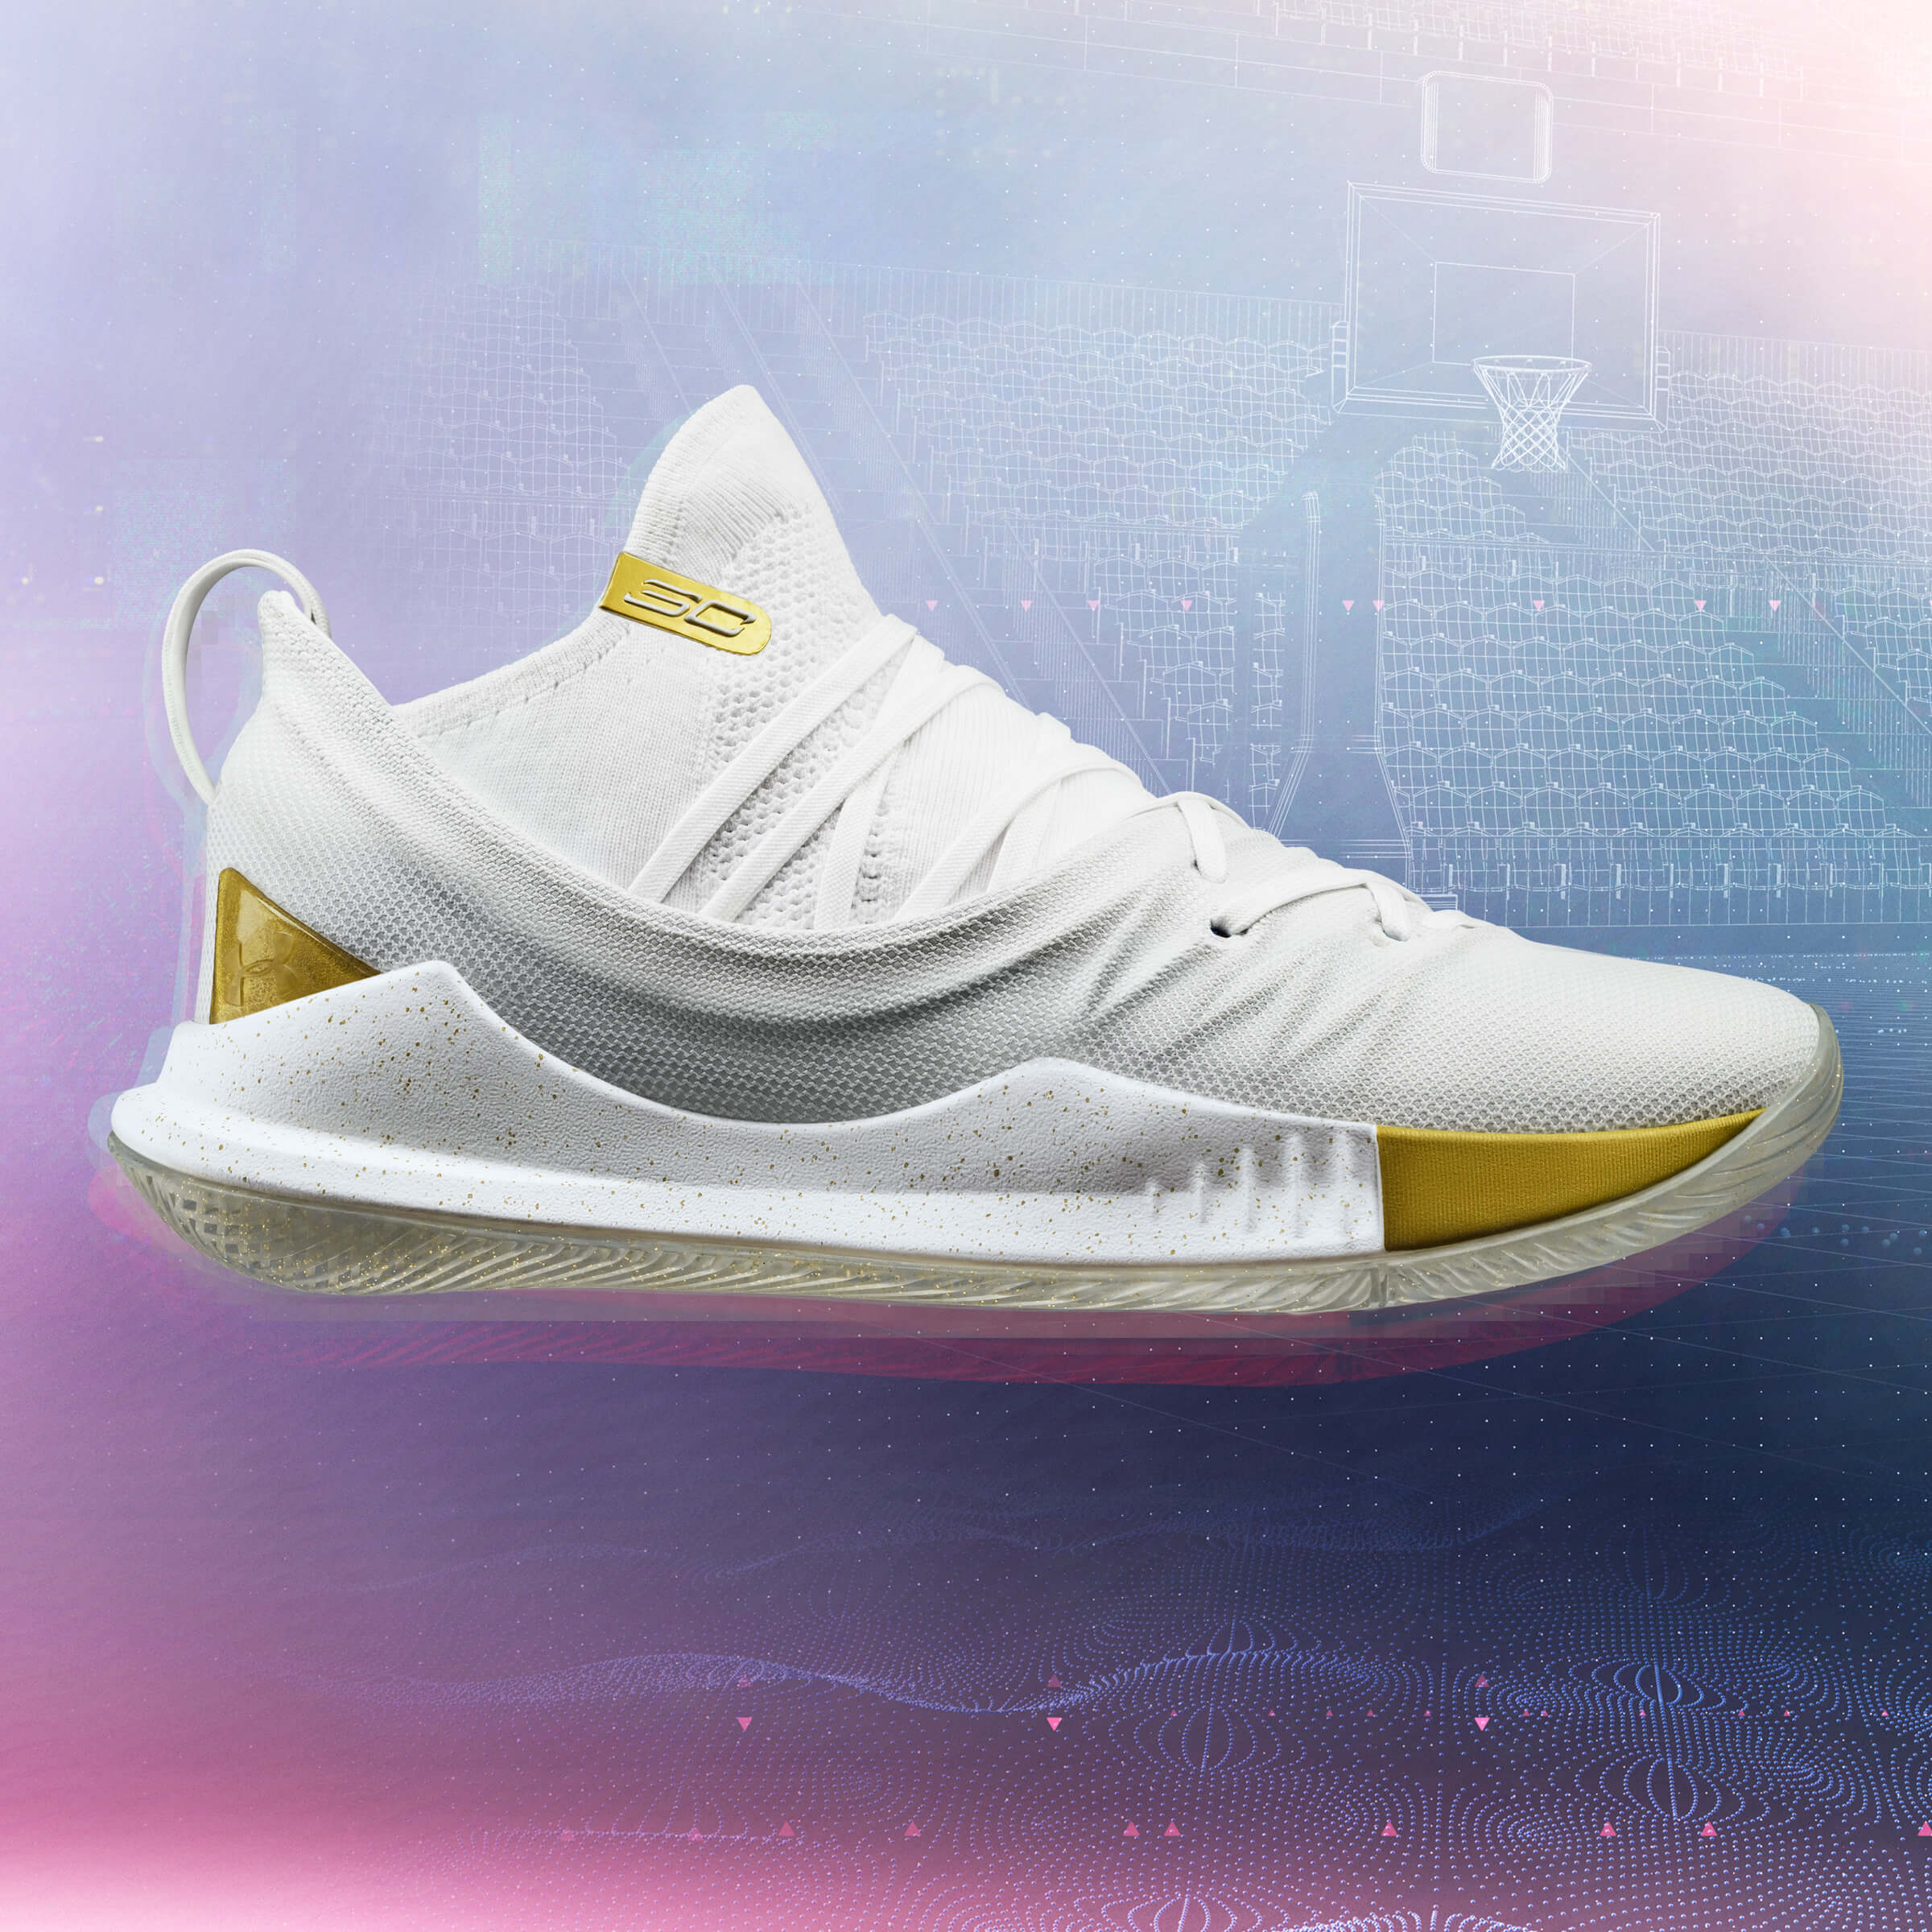 big sale 4f8c7 35d16 ... low cost the takeover begins now under armour and stephen curry to  release curry 5 championship